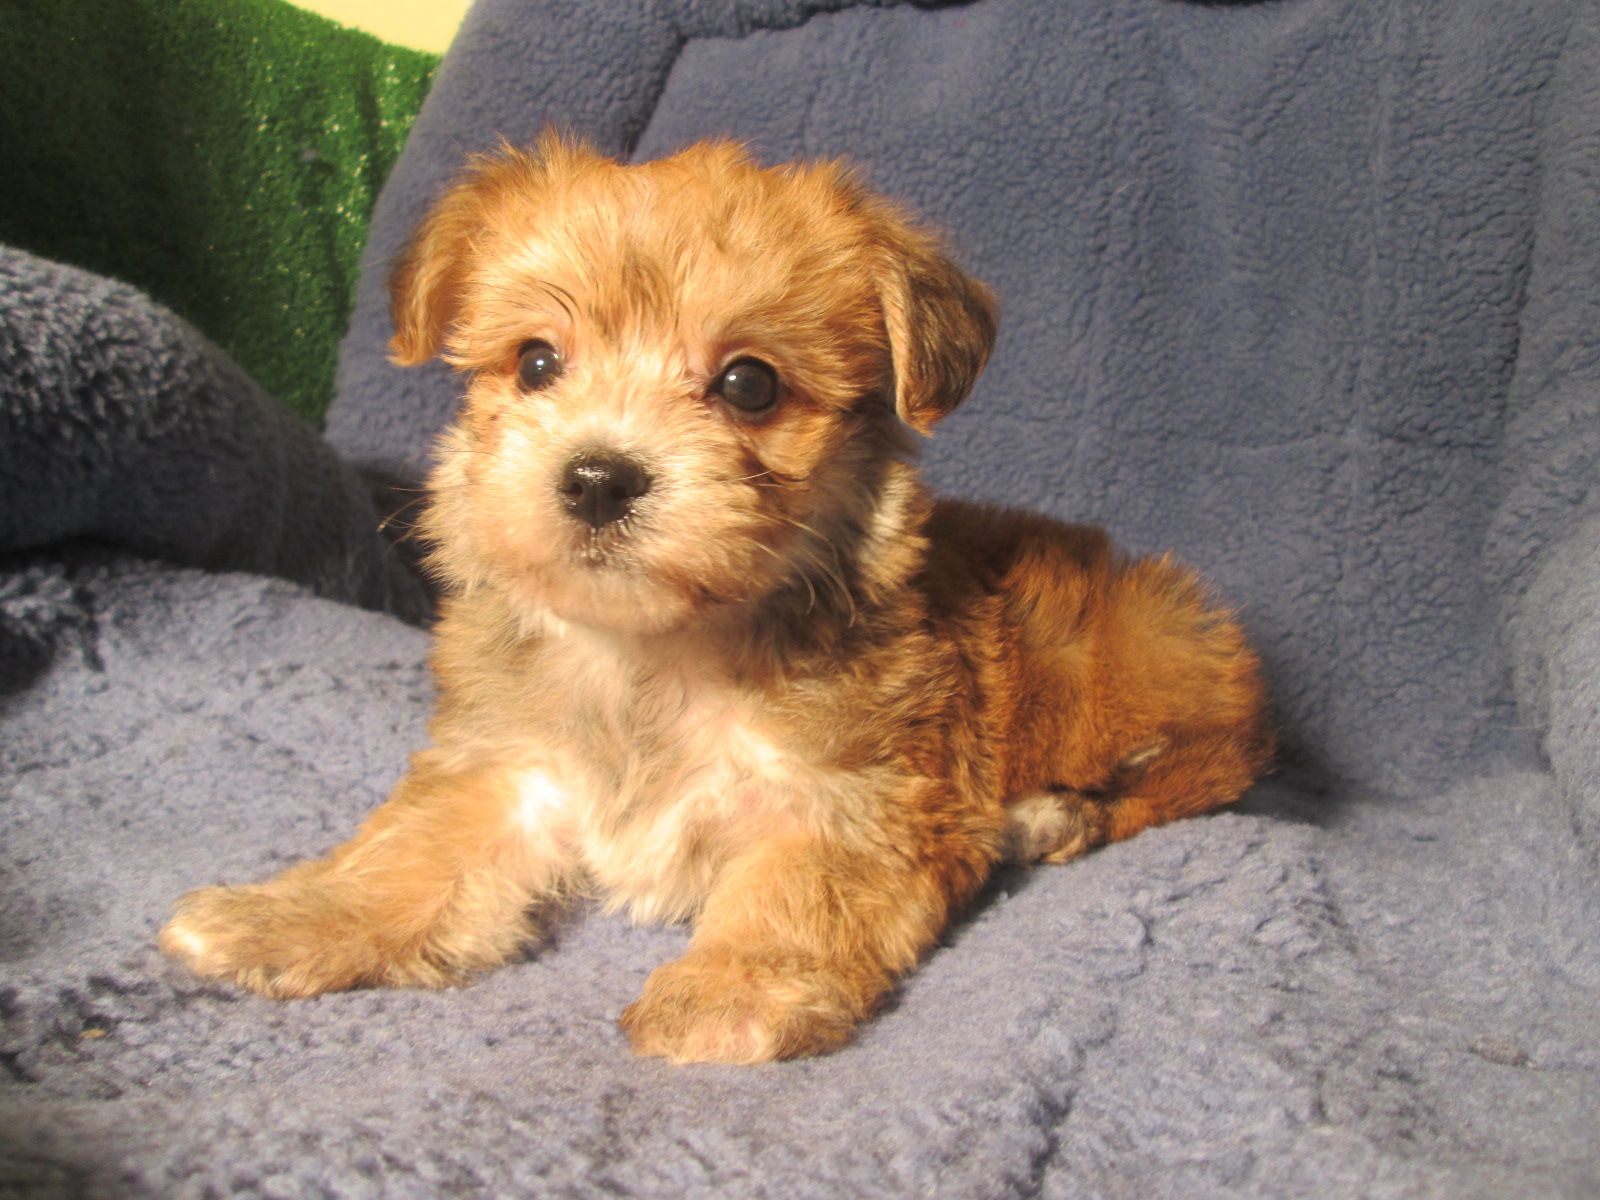 Cuddly Yochon Puppies Available Yorkie X Bichon 8 12 Weeks Of Age Permanent Shots And Wormings Completed Along Puppies Mixed Breed Puppies Dog Rules